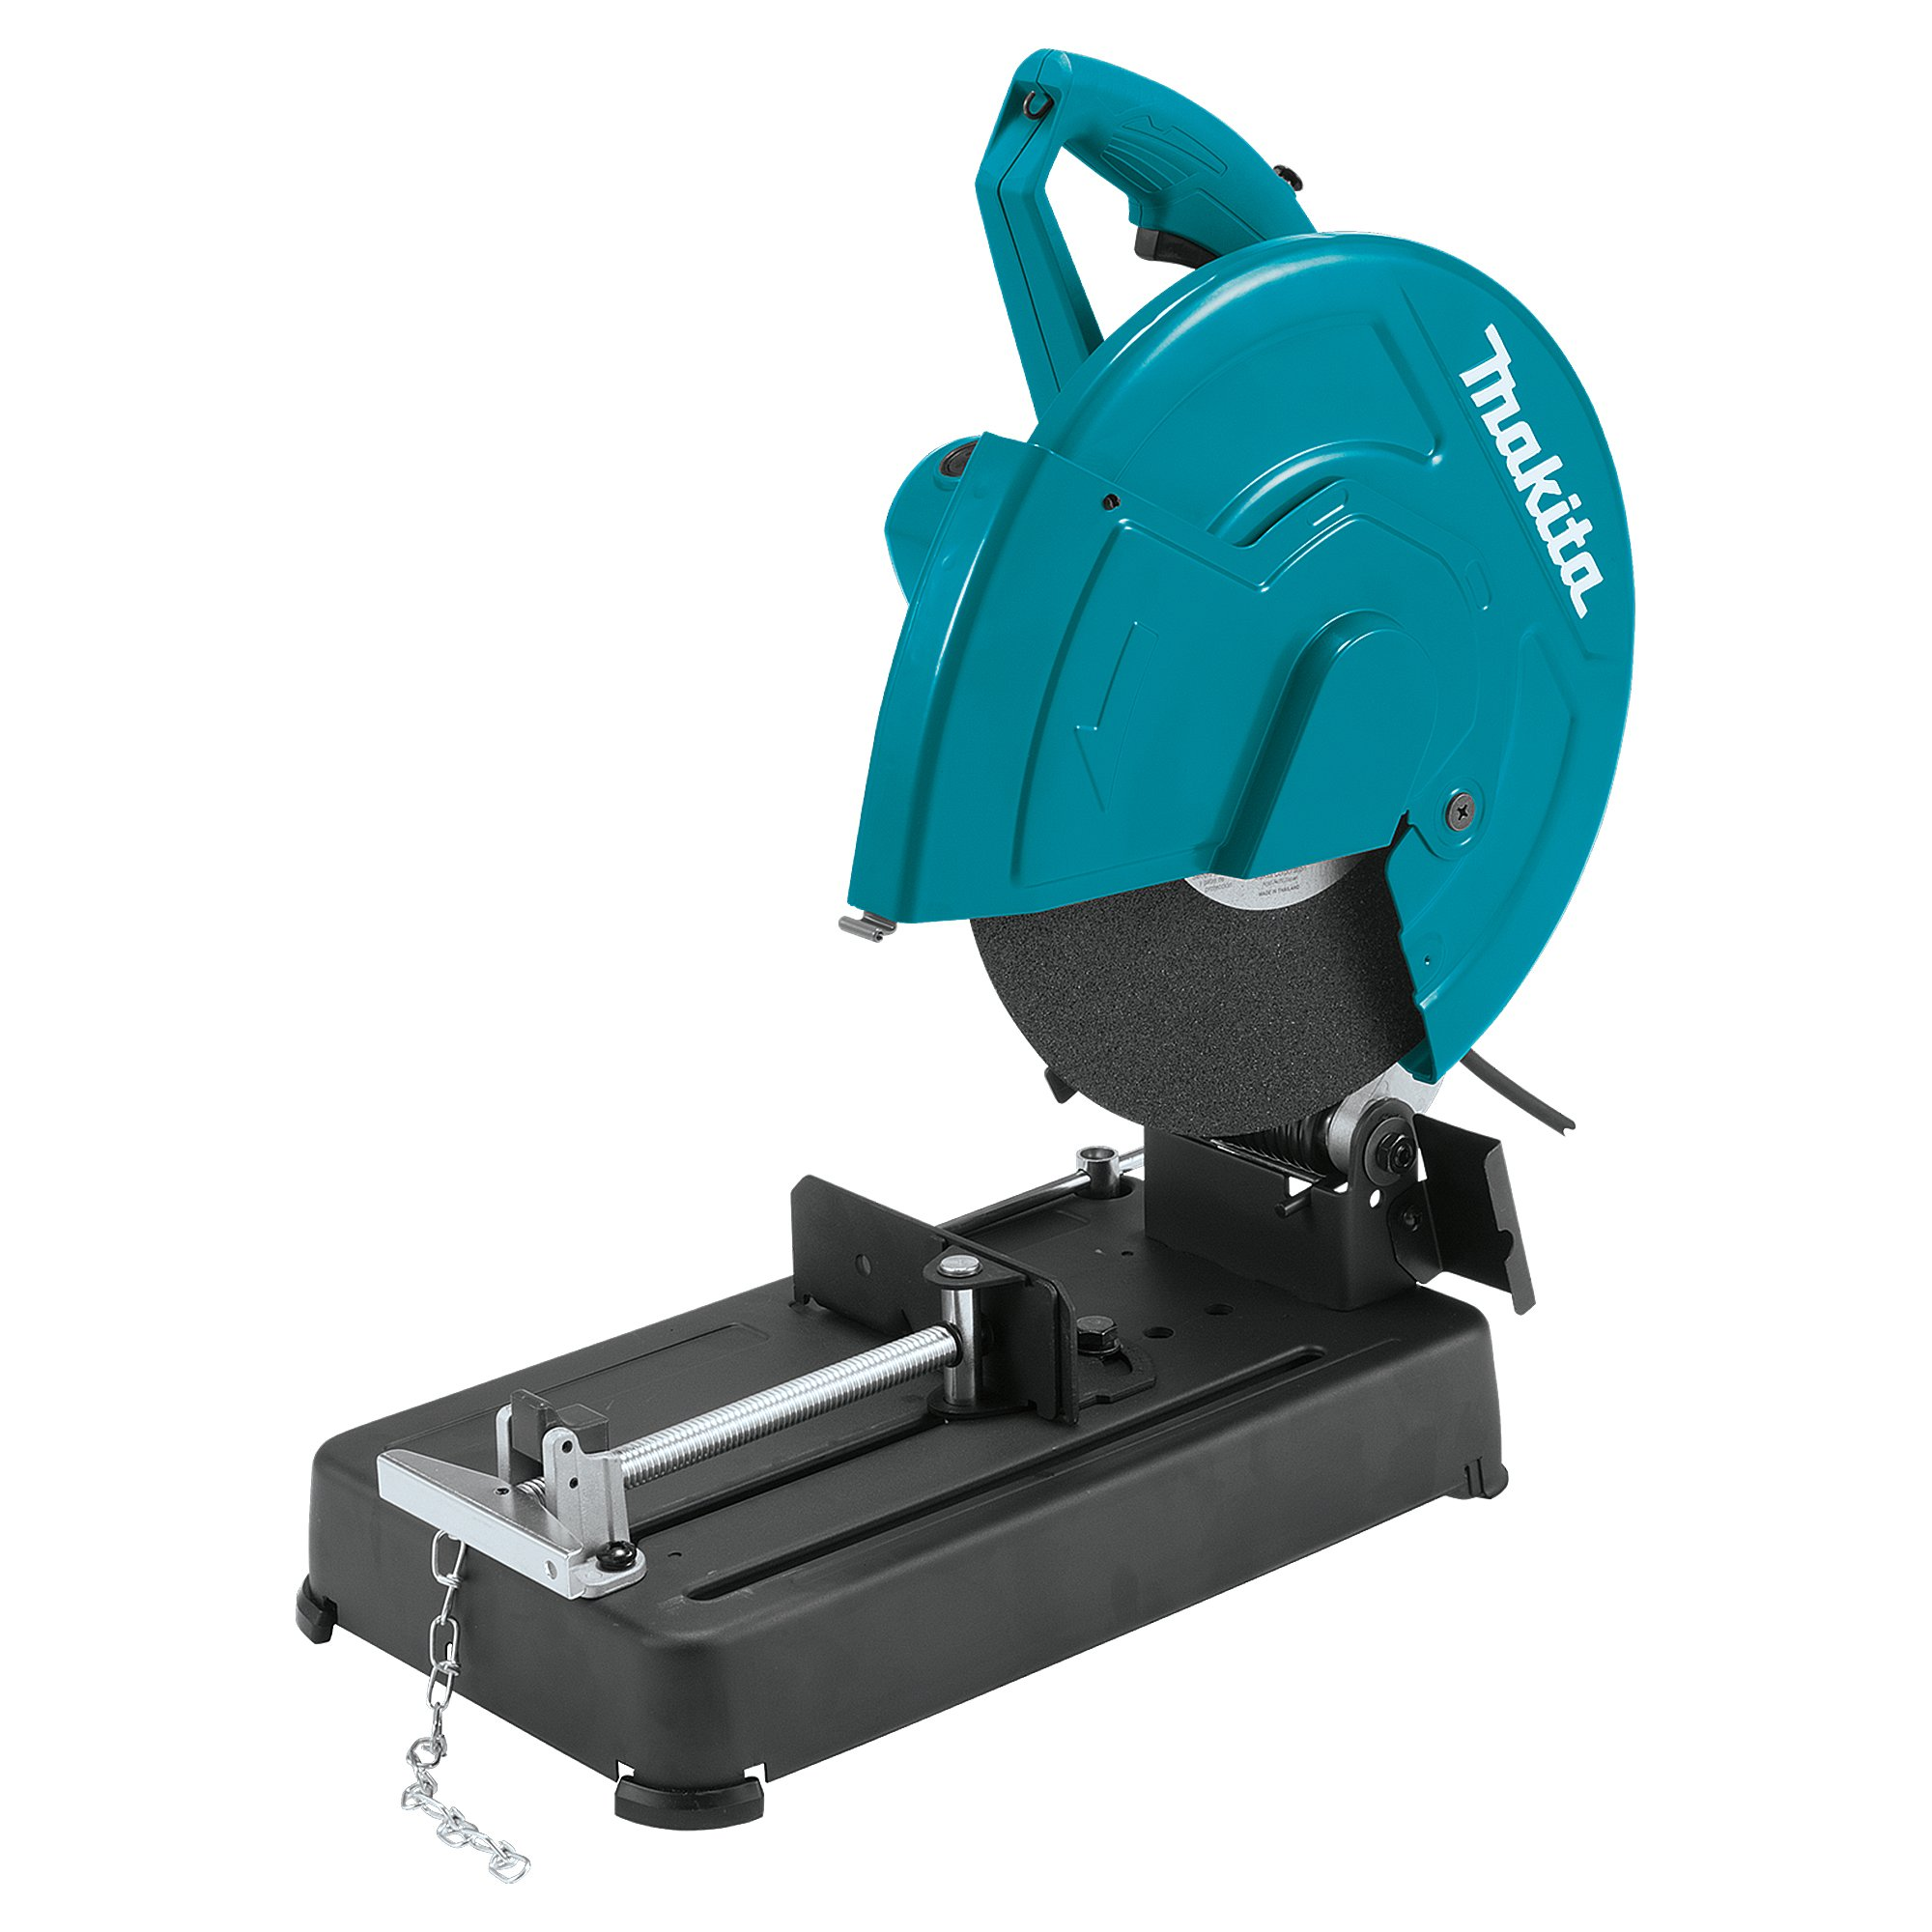 LW1401 – MAKITA PORTABLE CUT OFF